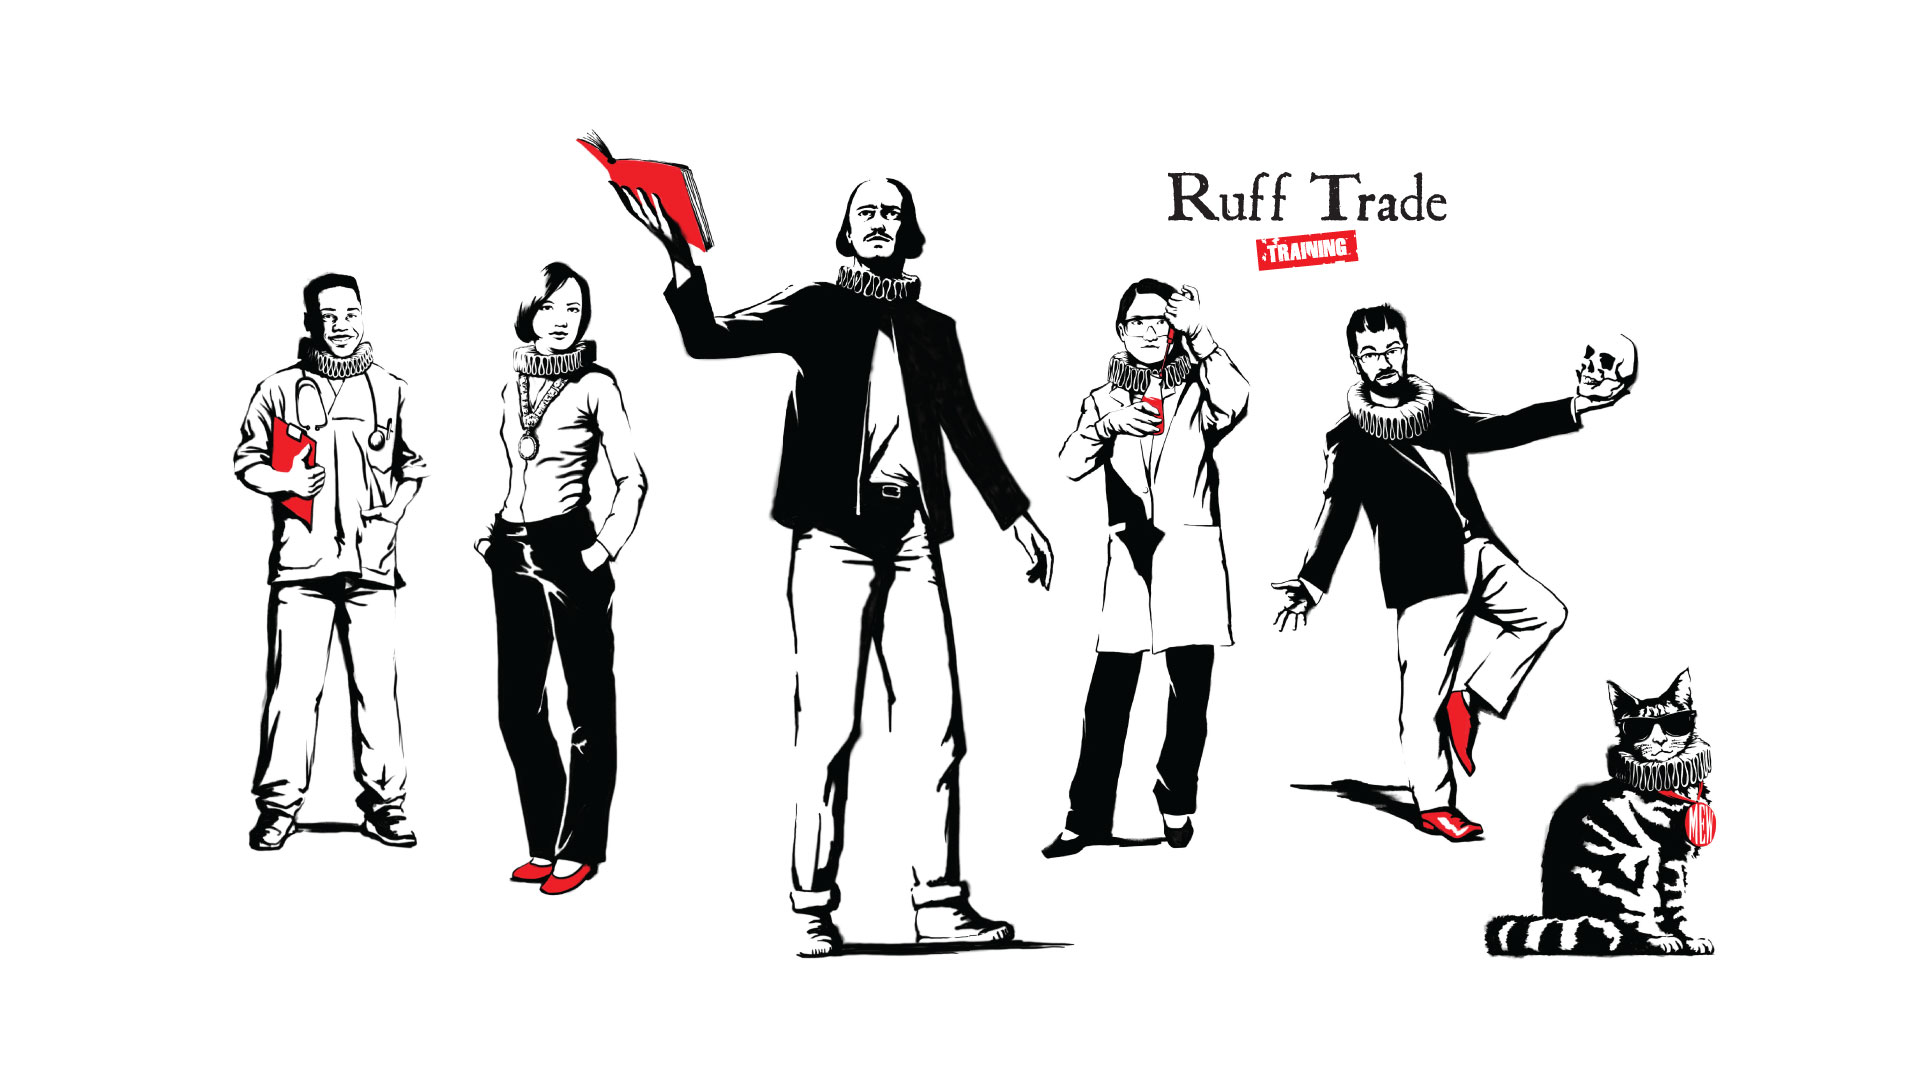 Ruff Trade Training Company Website Branding